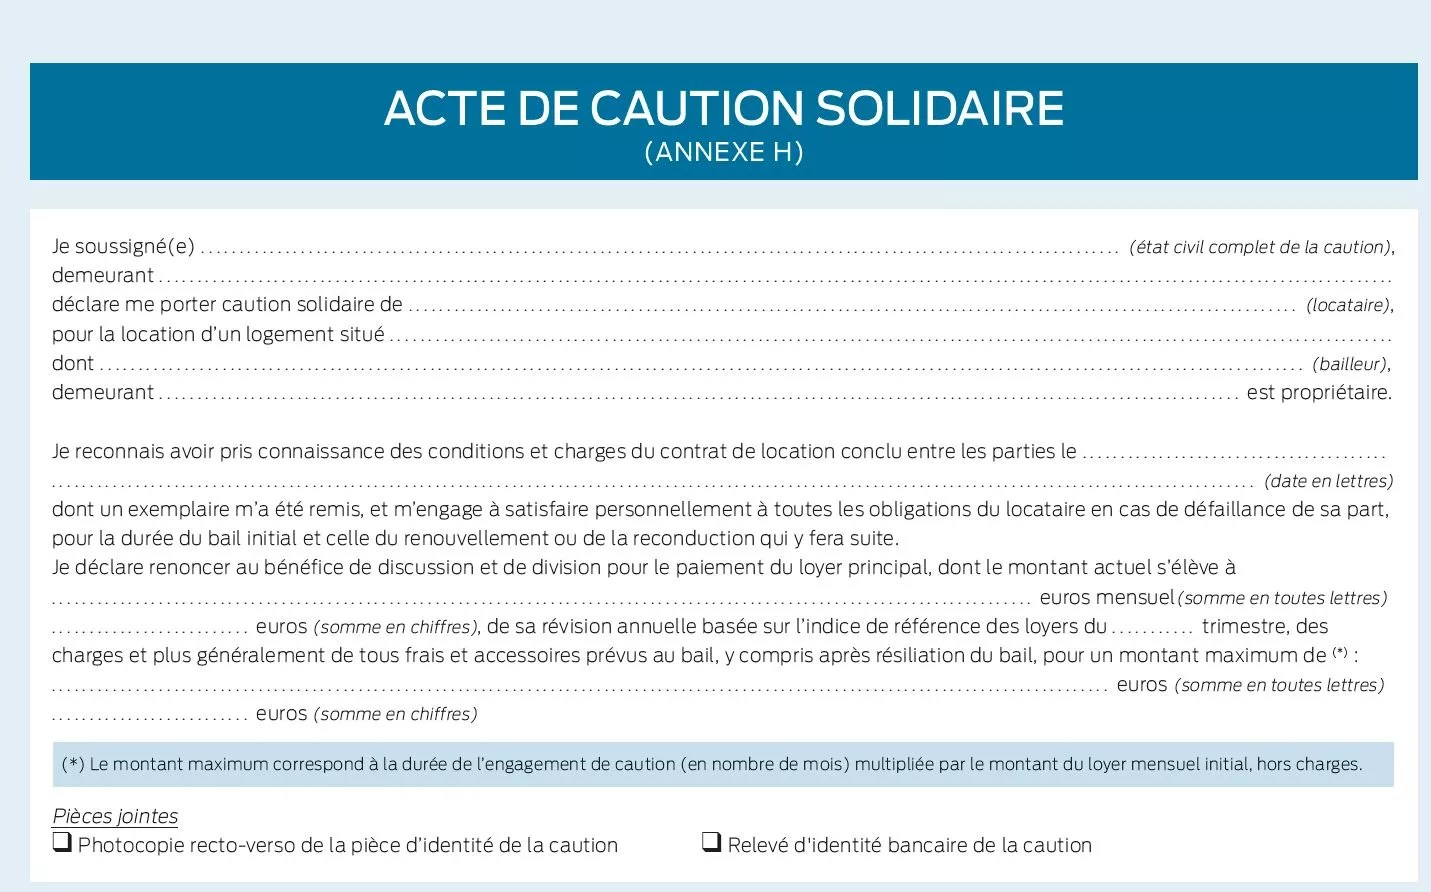 Location Fin De La Mention Manuscrite Pour Lacte De Caution